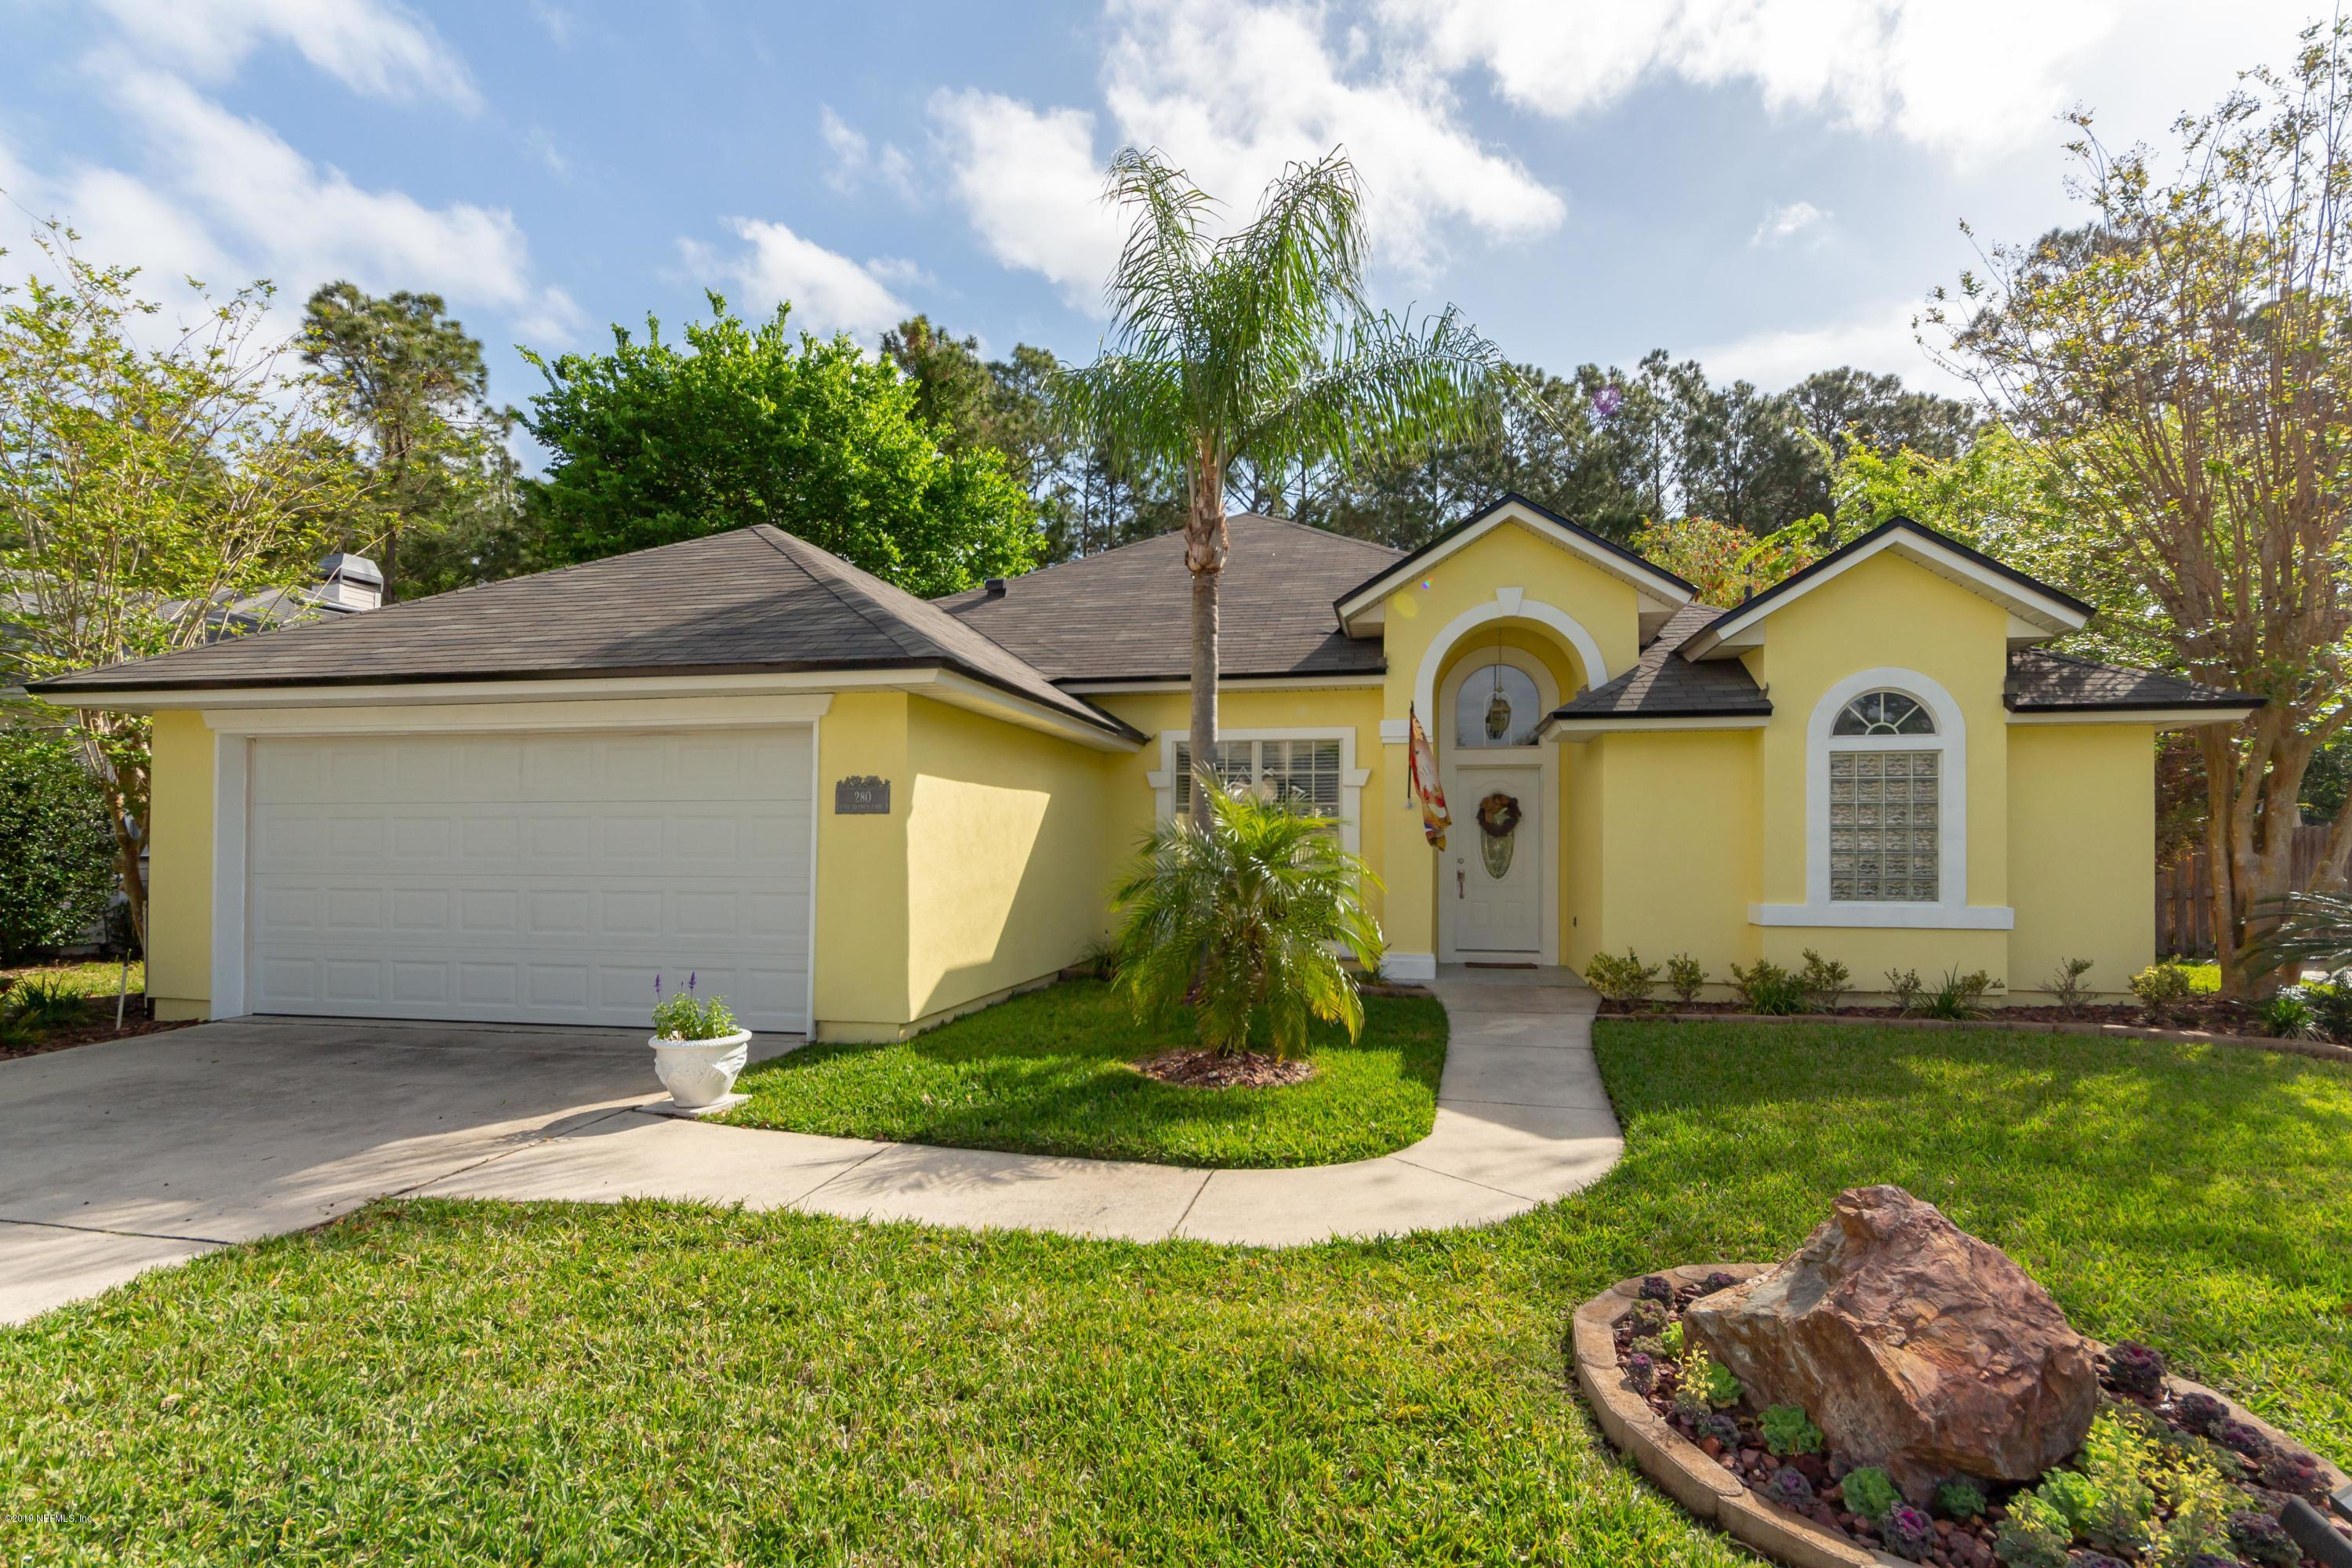 280 BELL BRANCH, JACKSONVILLE, FLORIDA 32259, 4 Bedrooms Bedrooms, ,2 BathroomsBathrooms,Residential - single family,For sale,BELL BRANCH,986821